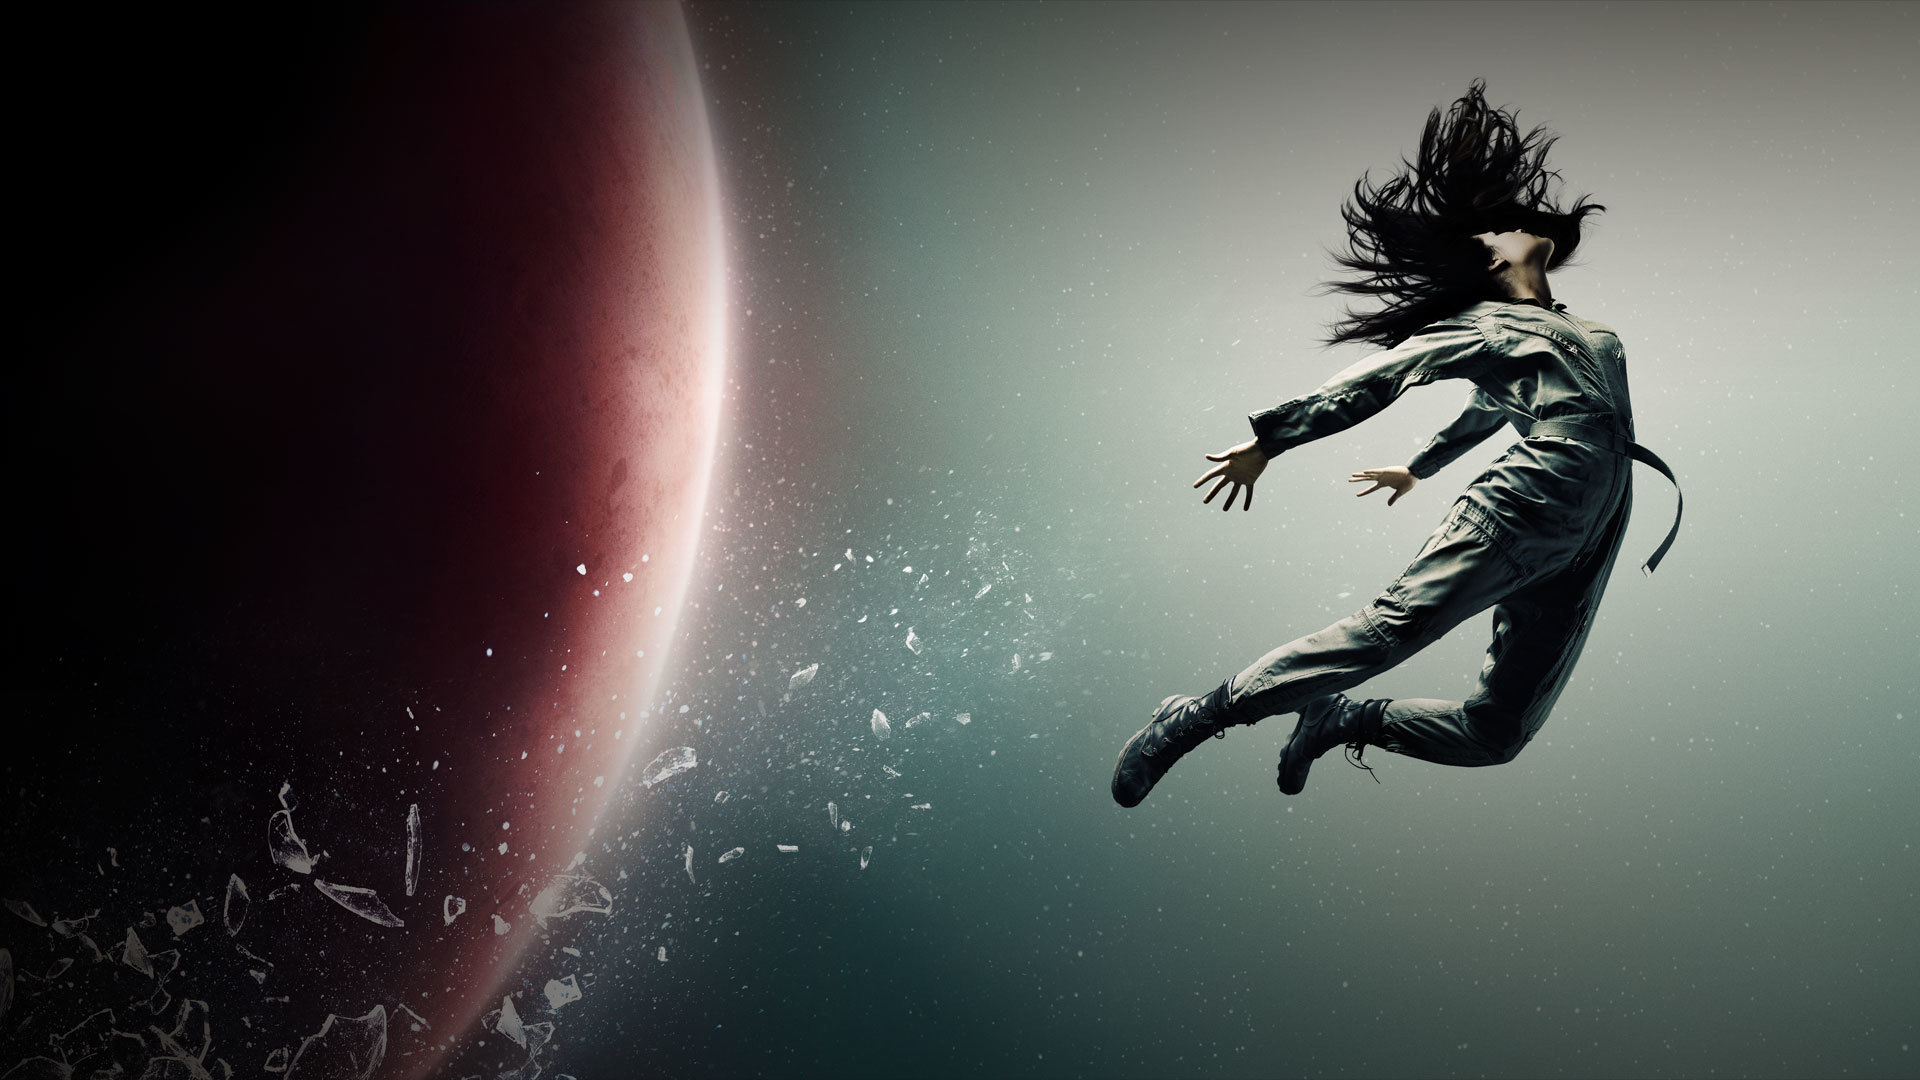 The expanse hd tv shows 4k wallpapers images - Tv series wallpaper 4k ...